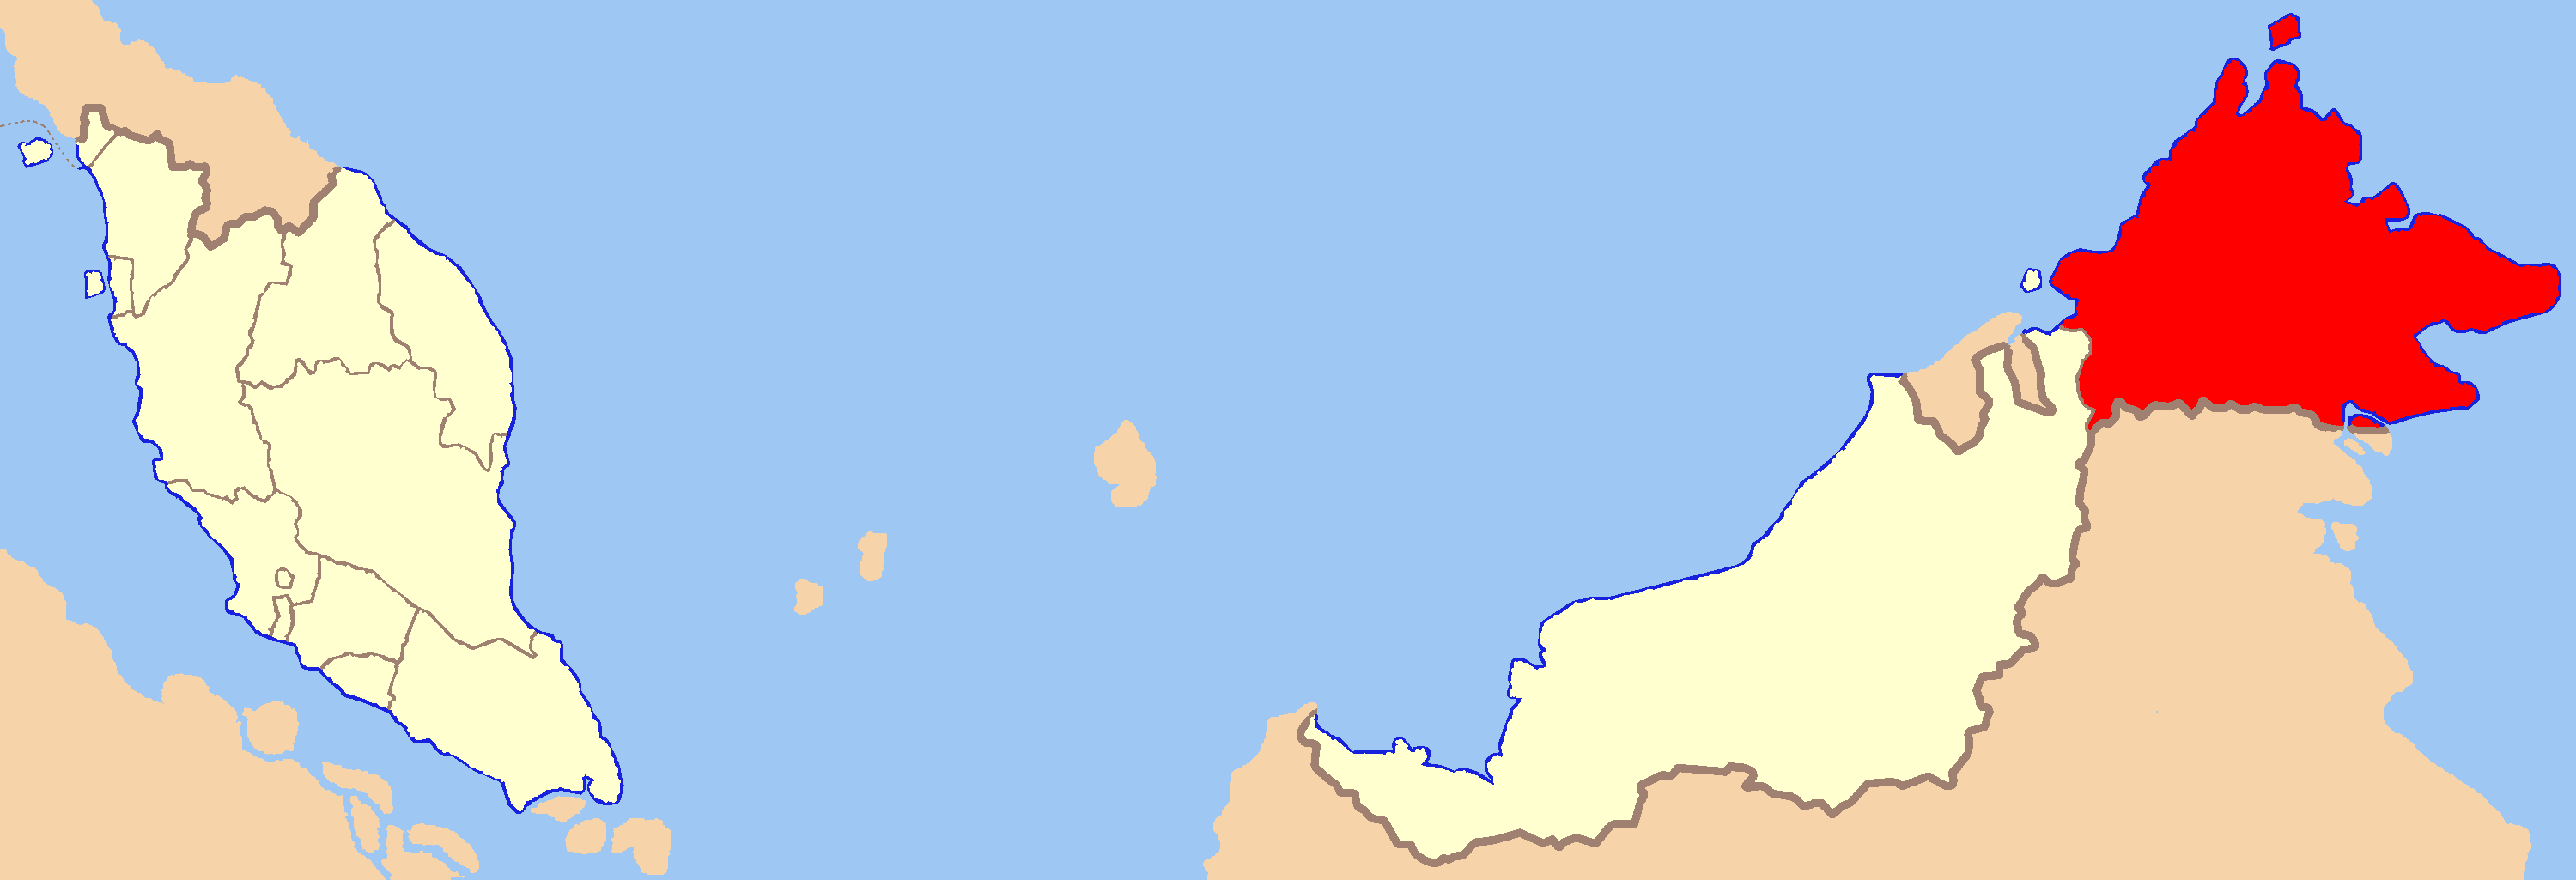 Description sabah state locator